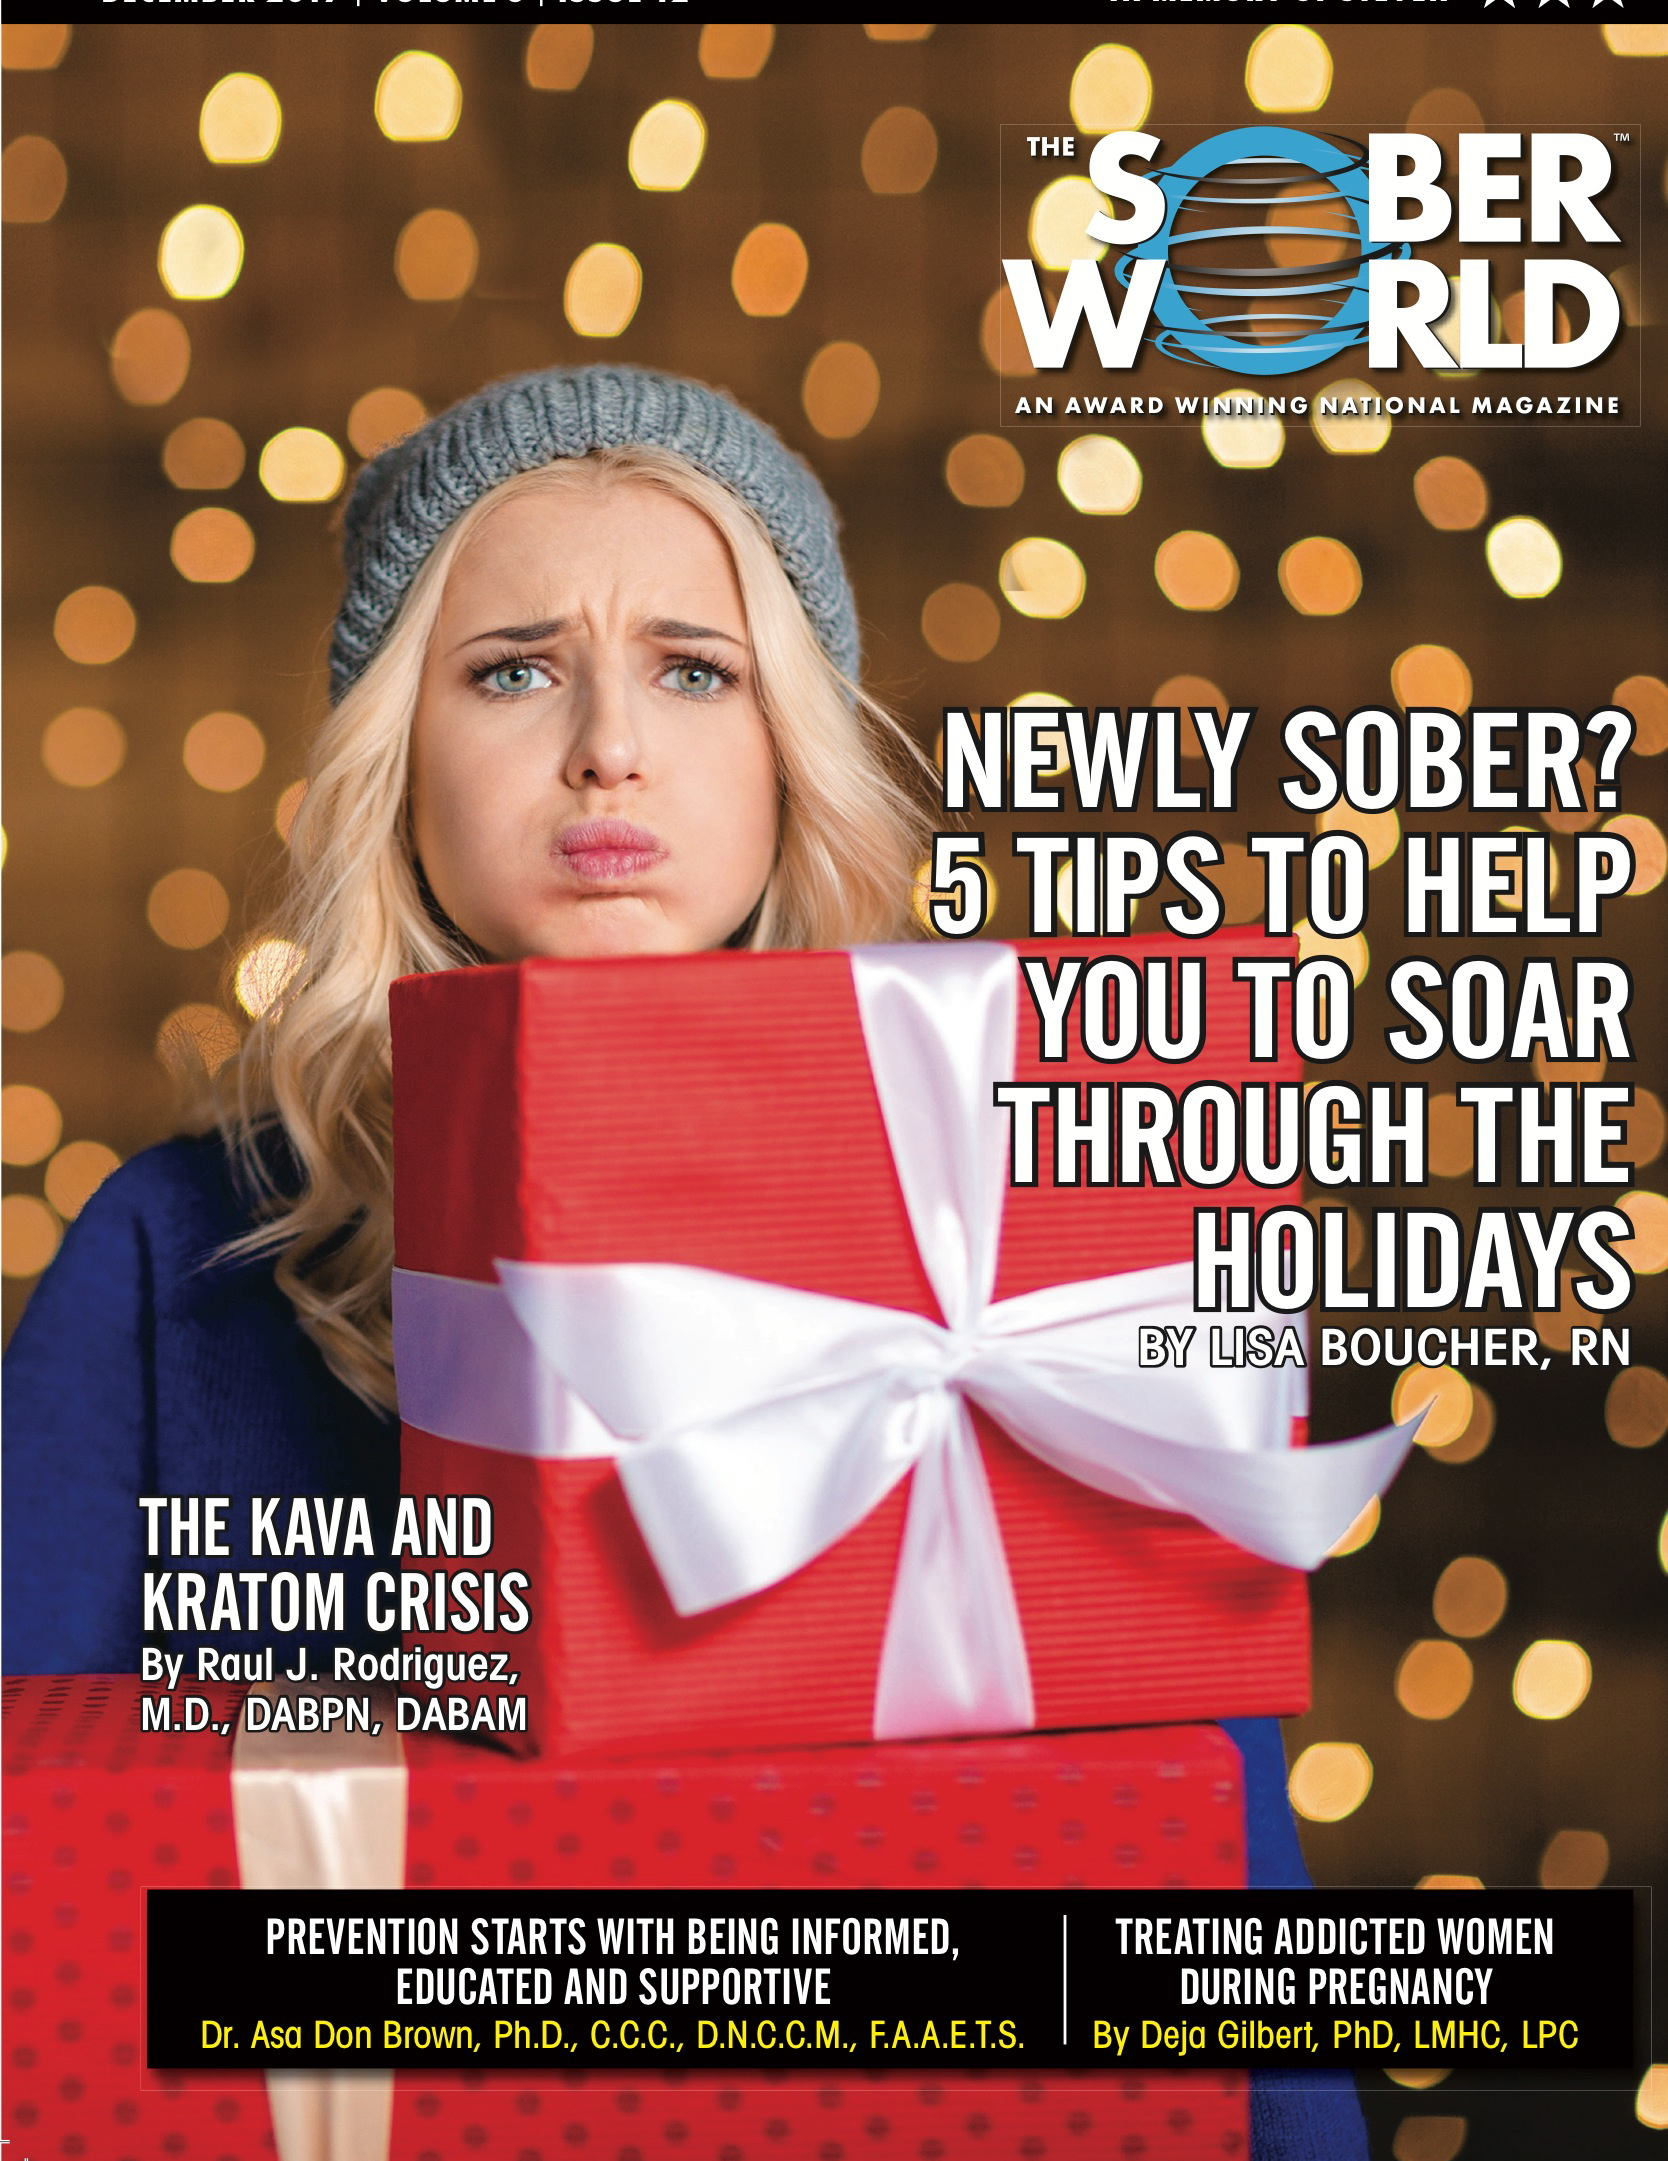 Cover Dec 2017 SoberWorld DrADB.jpeg